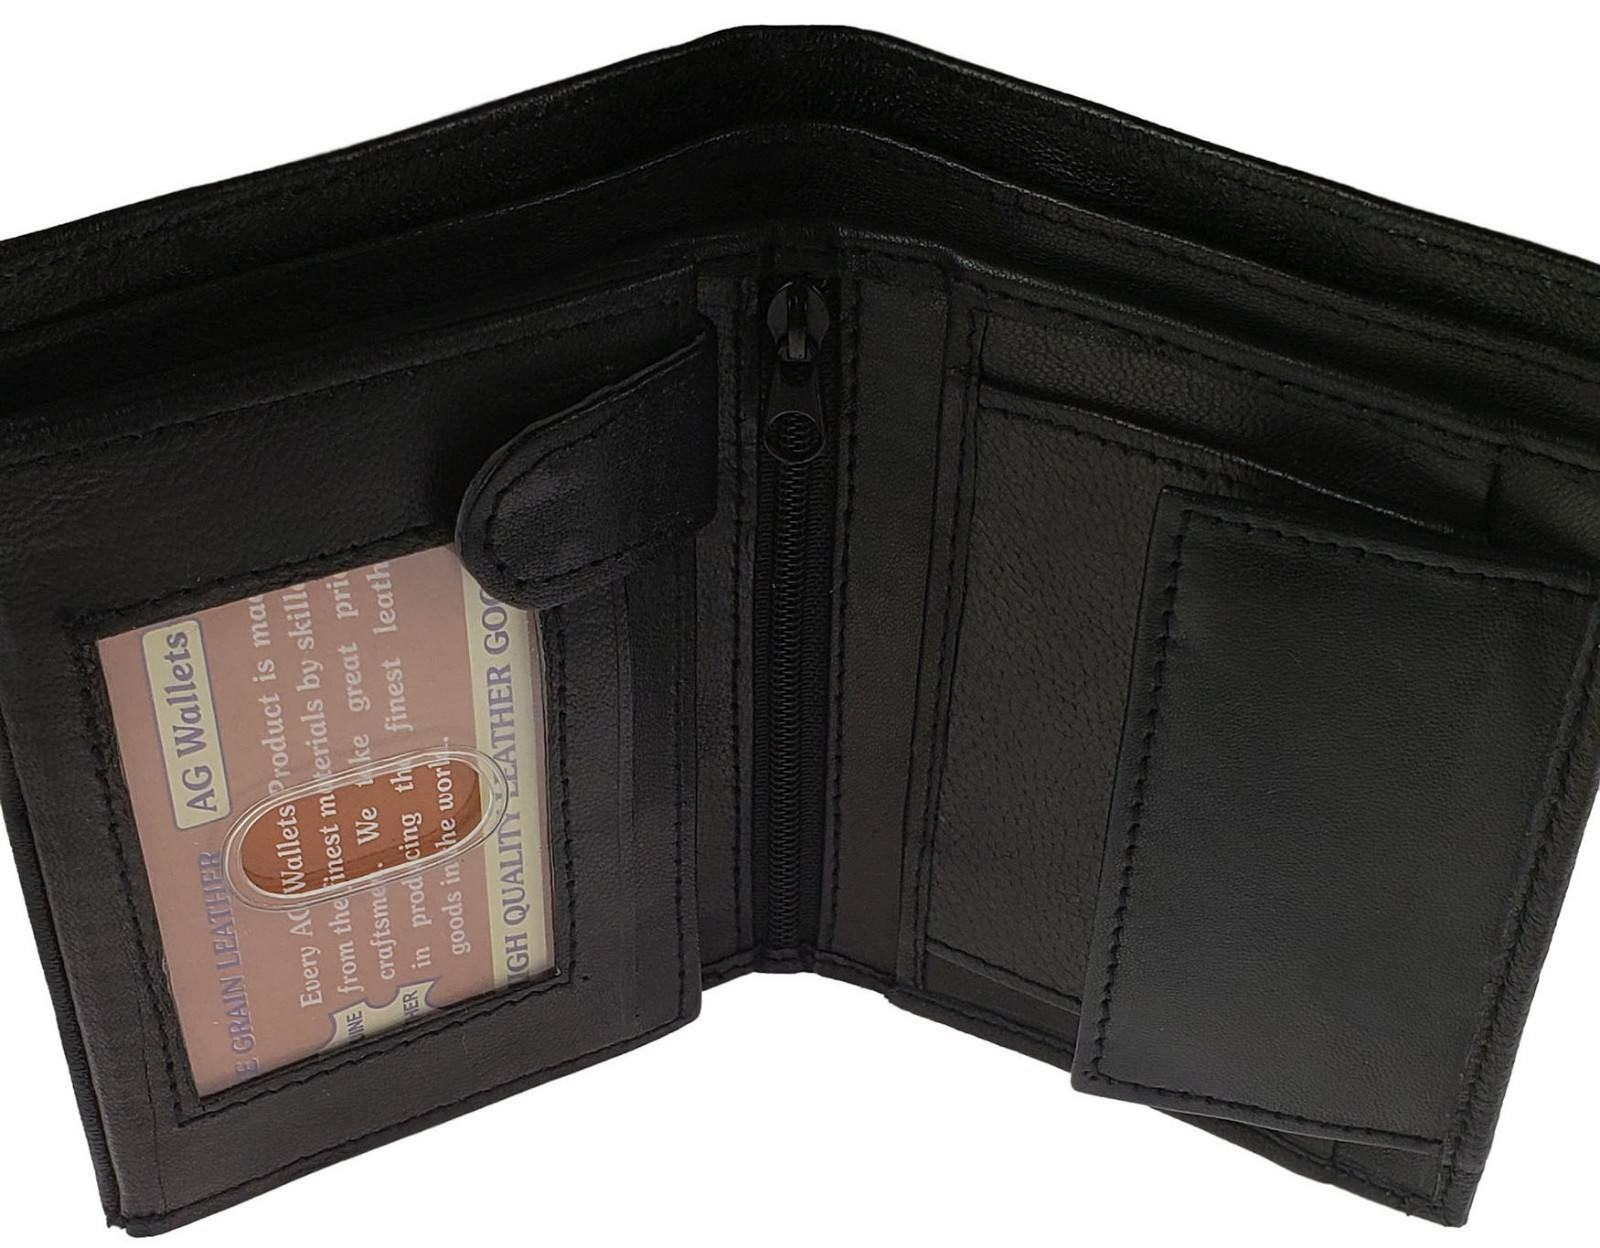 AG Wallets European Black Leather Trifold Wallet-3 ID,8 CC Slots,Change Pocket